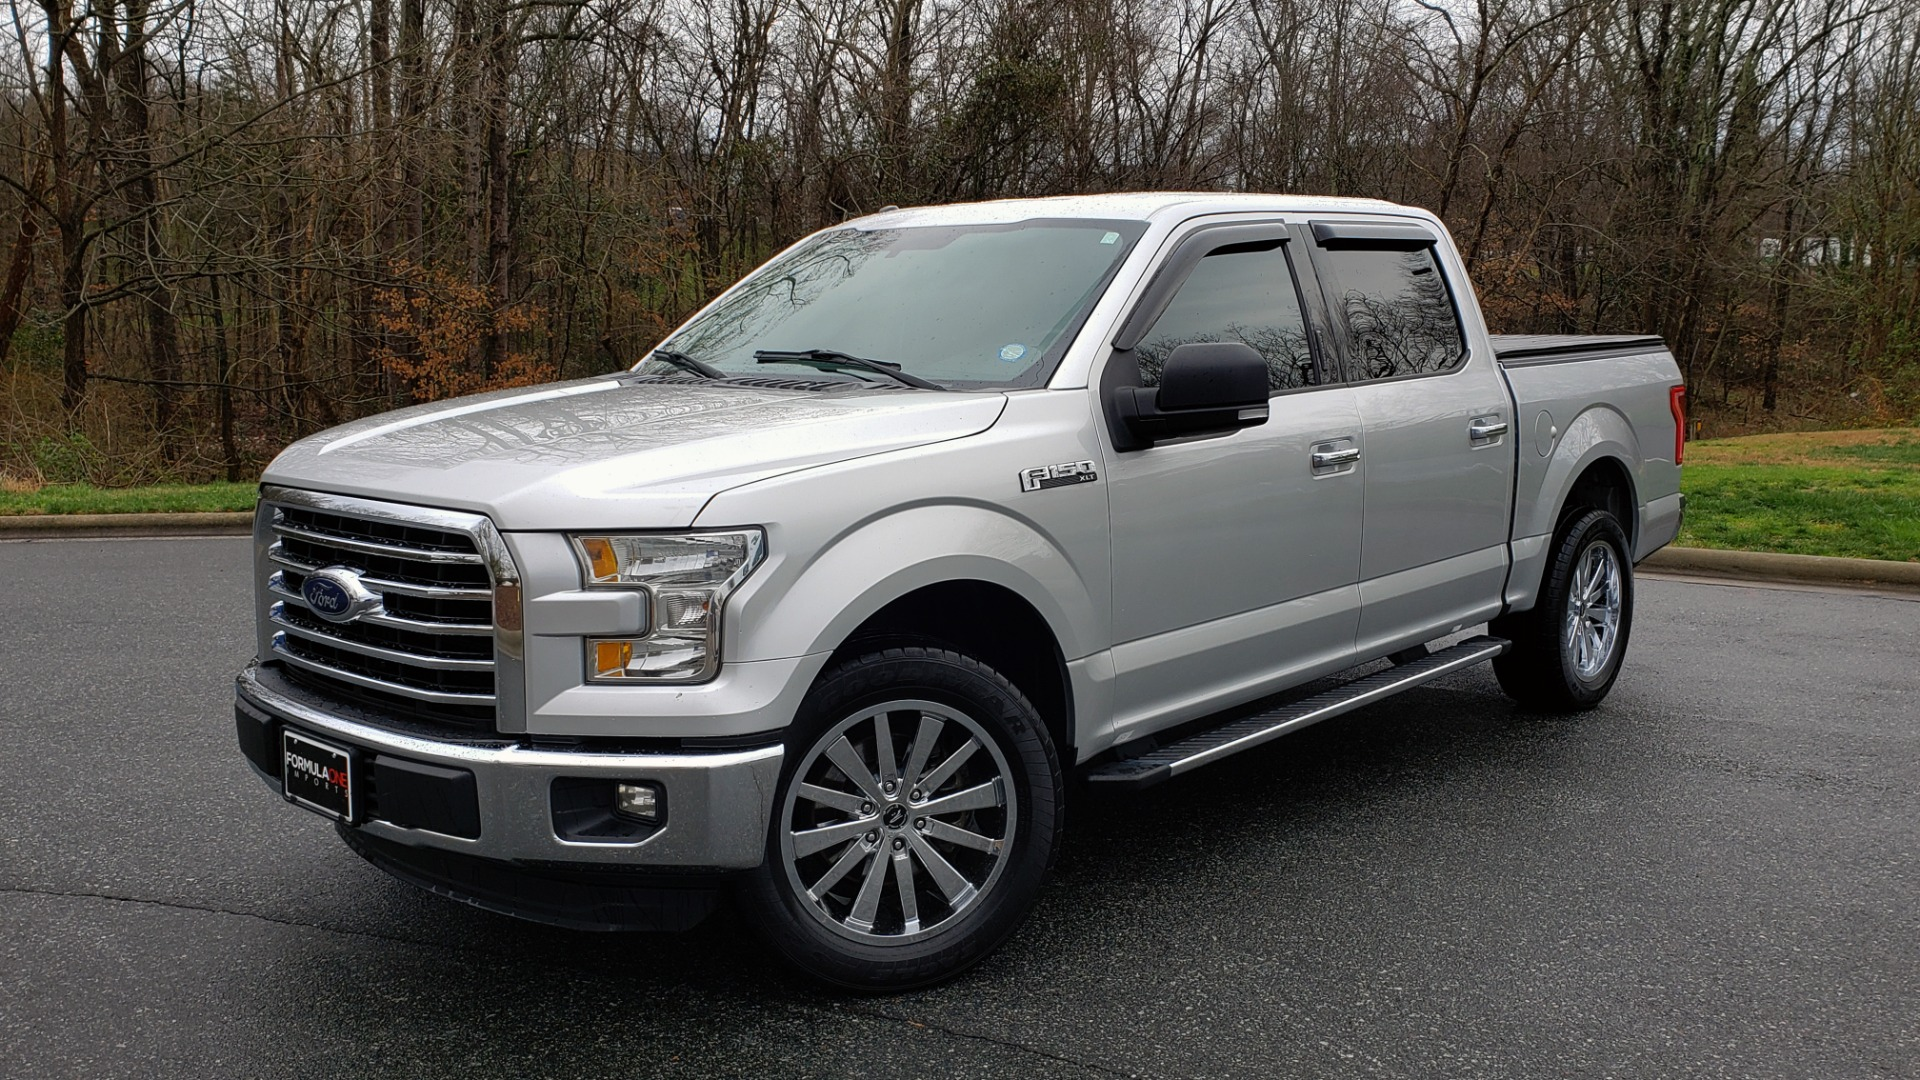 Used 2015 Ford F-150 XLT 4X2 SUPERCREW / 5.0L V8 / SYNC / REARVIEW for sale Sold at Formula Imports in Charlotte NC 28227 1